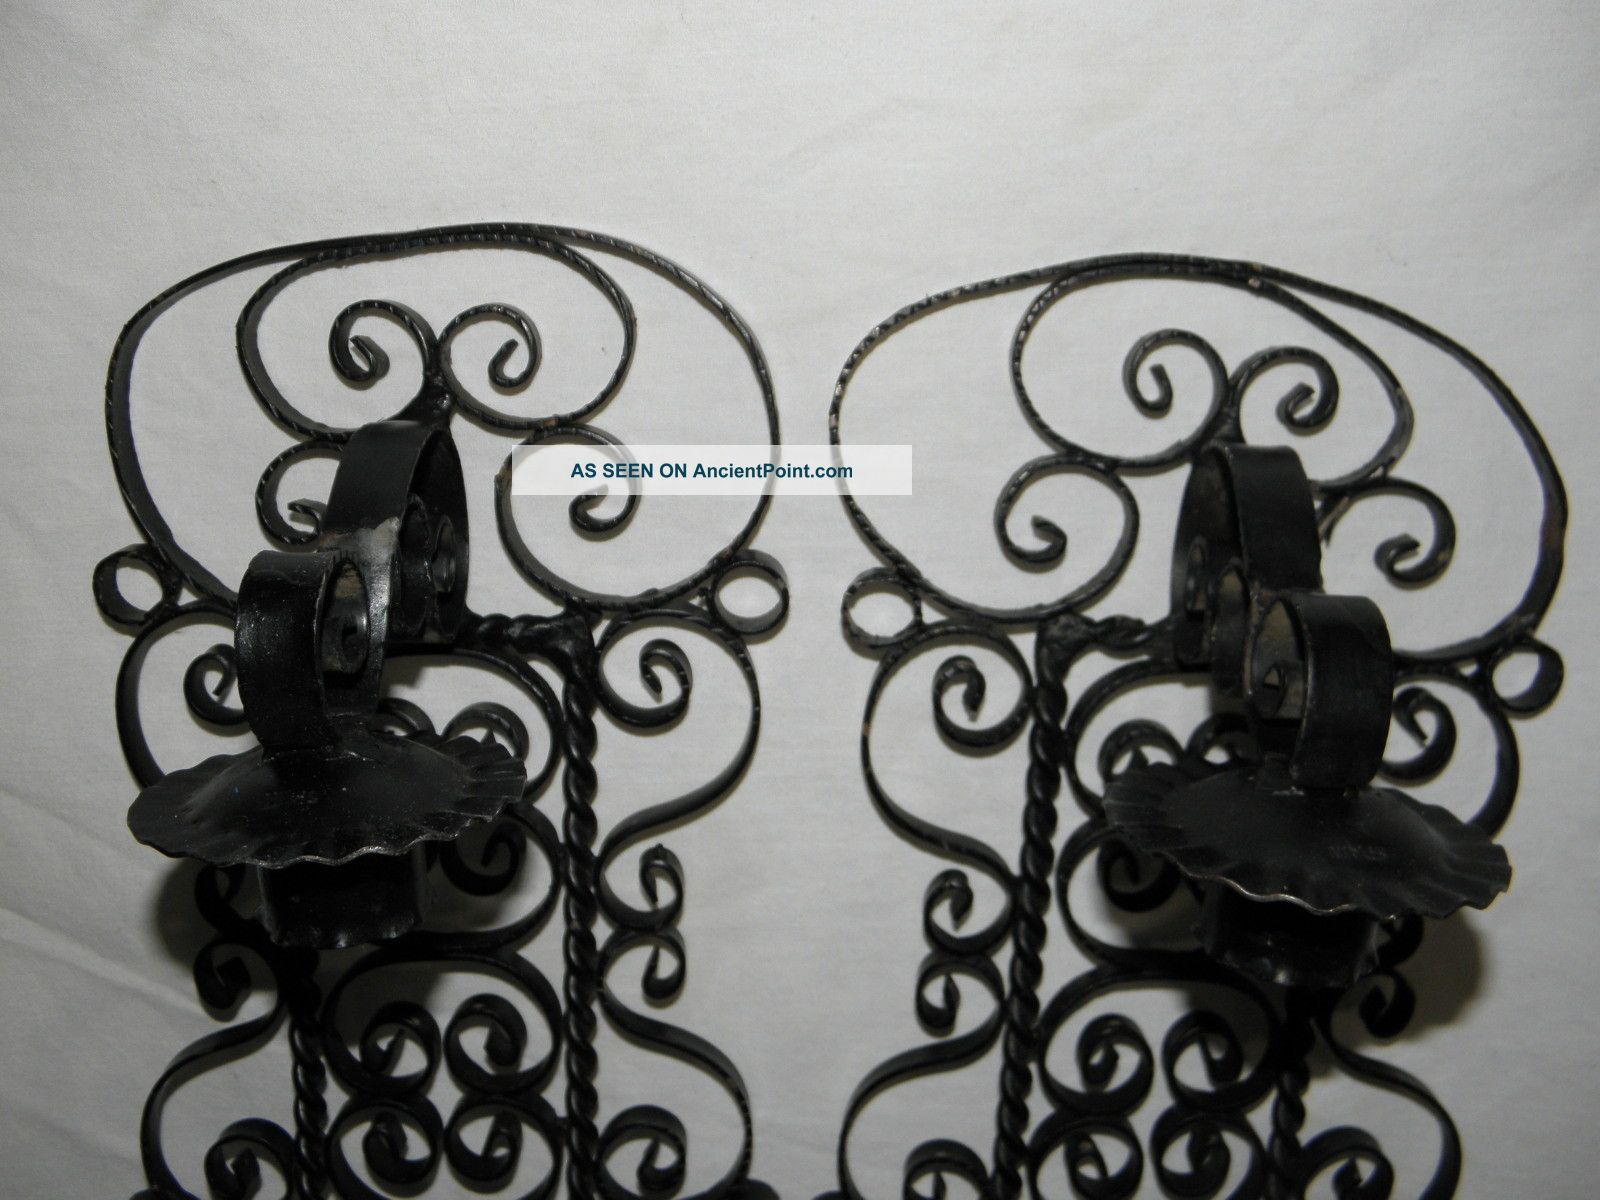 Huge 29 Wrought Iron Medieval Wall Sconce Gothic Spanish Revival Candle Holder